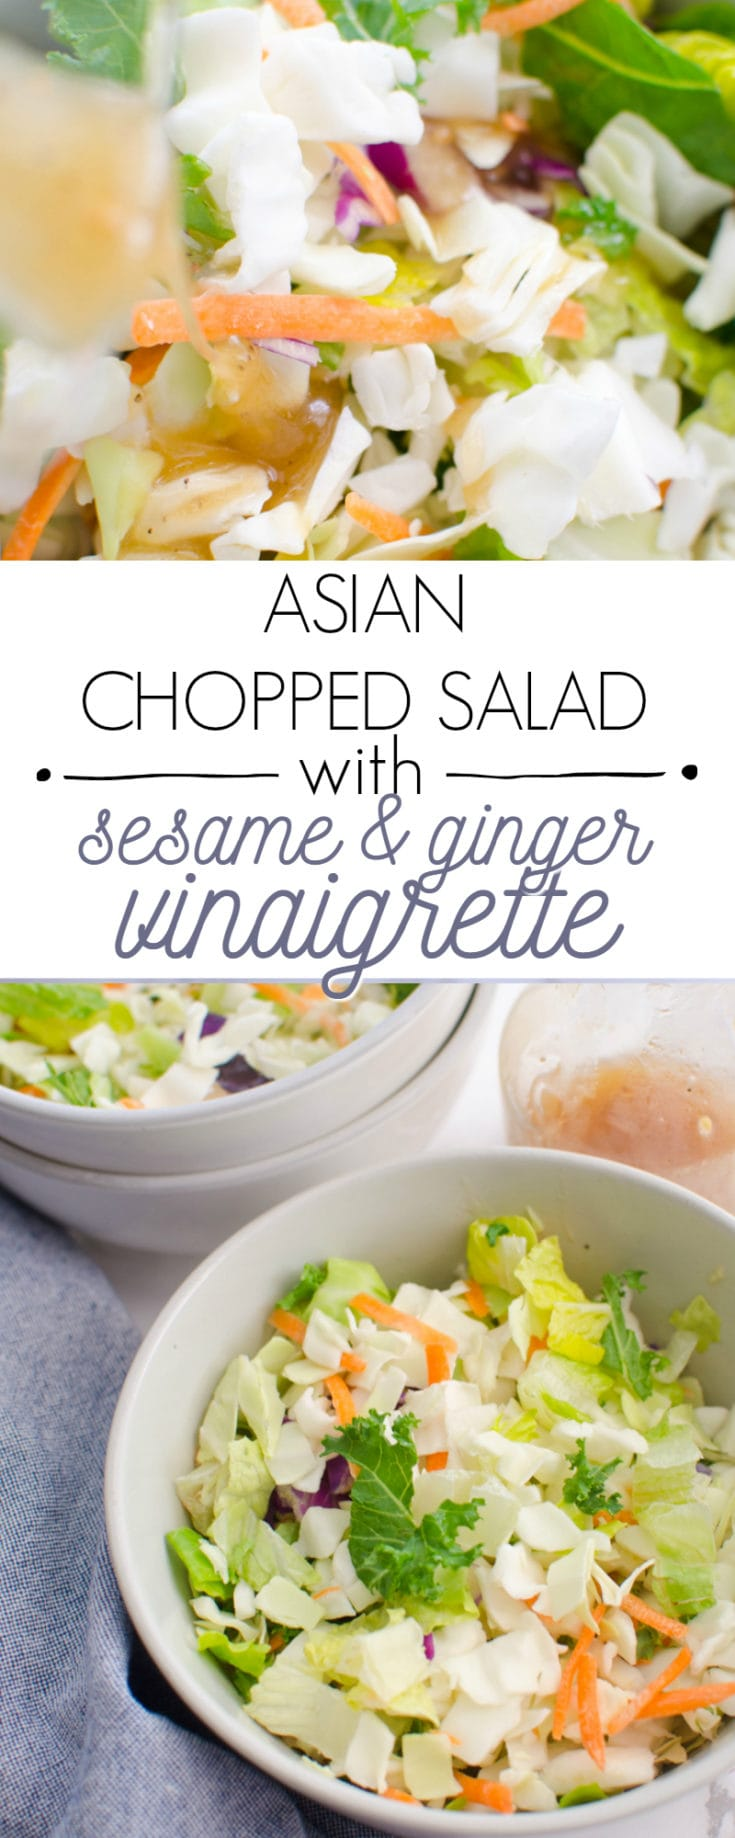 Asian Chopped Salad with Sesame and Ginger Vinaigrette